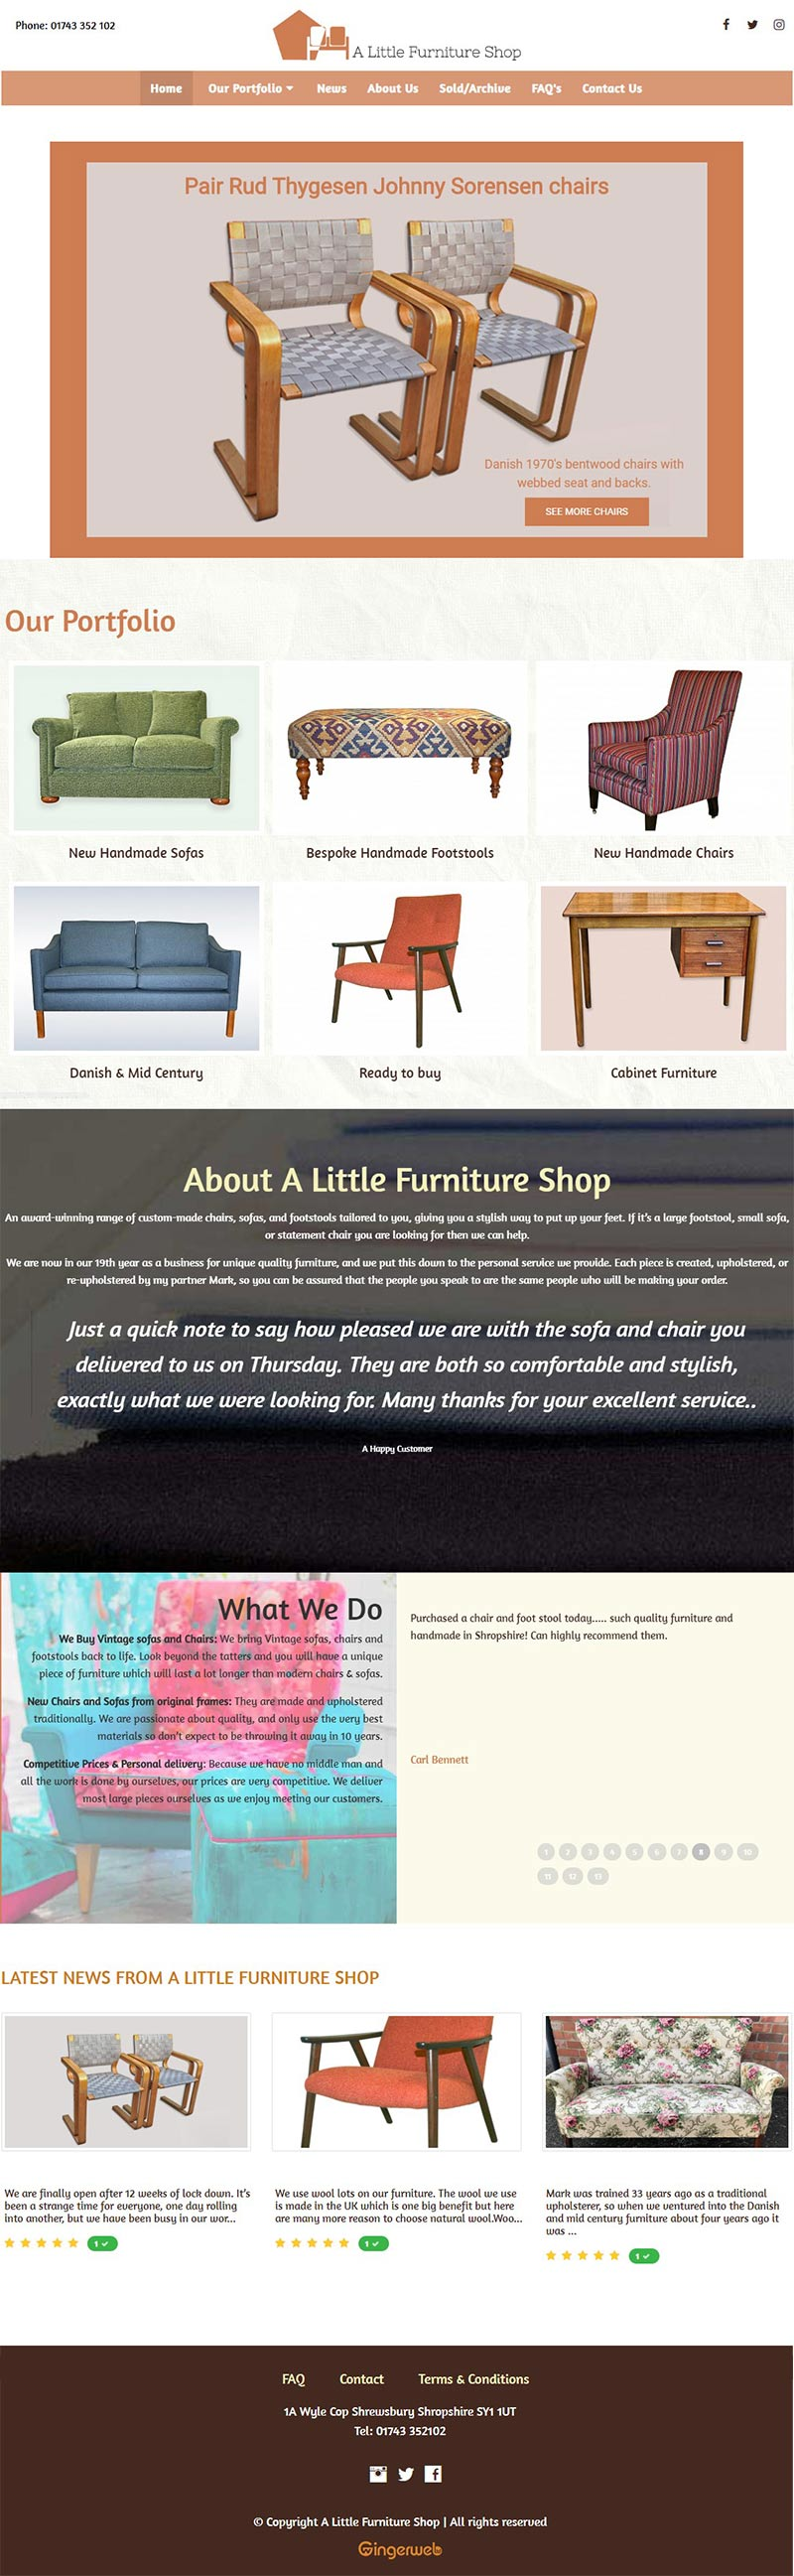 A Little Furniture Shop